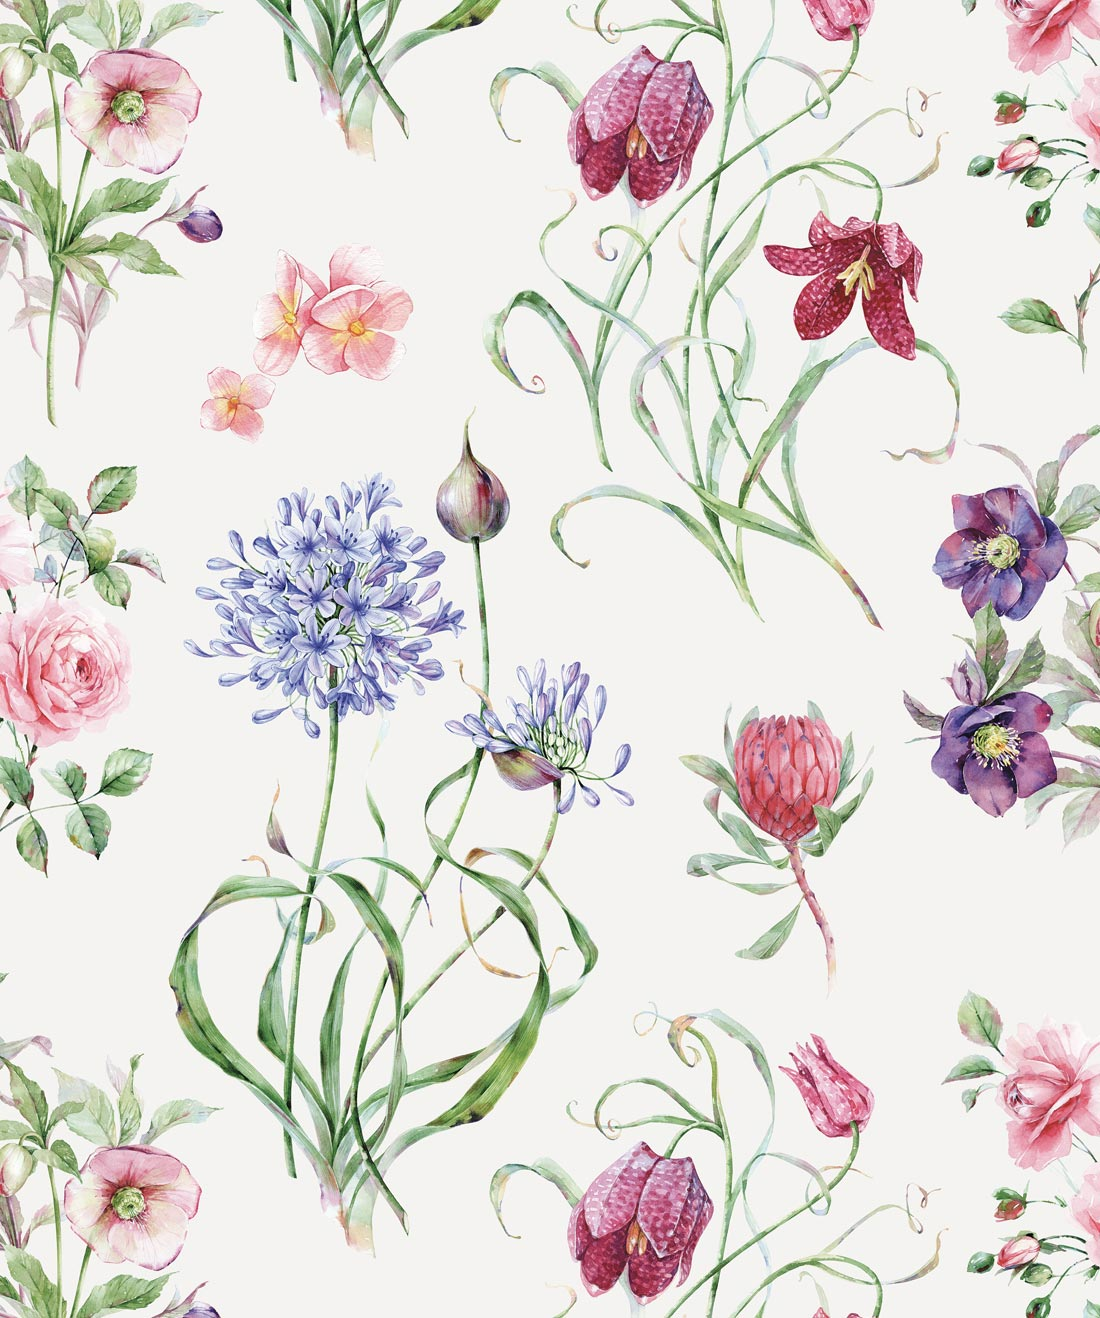 Botanical Watercolor Foral Motif Wallpaper Milton King